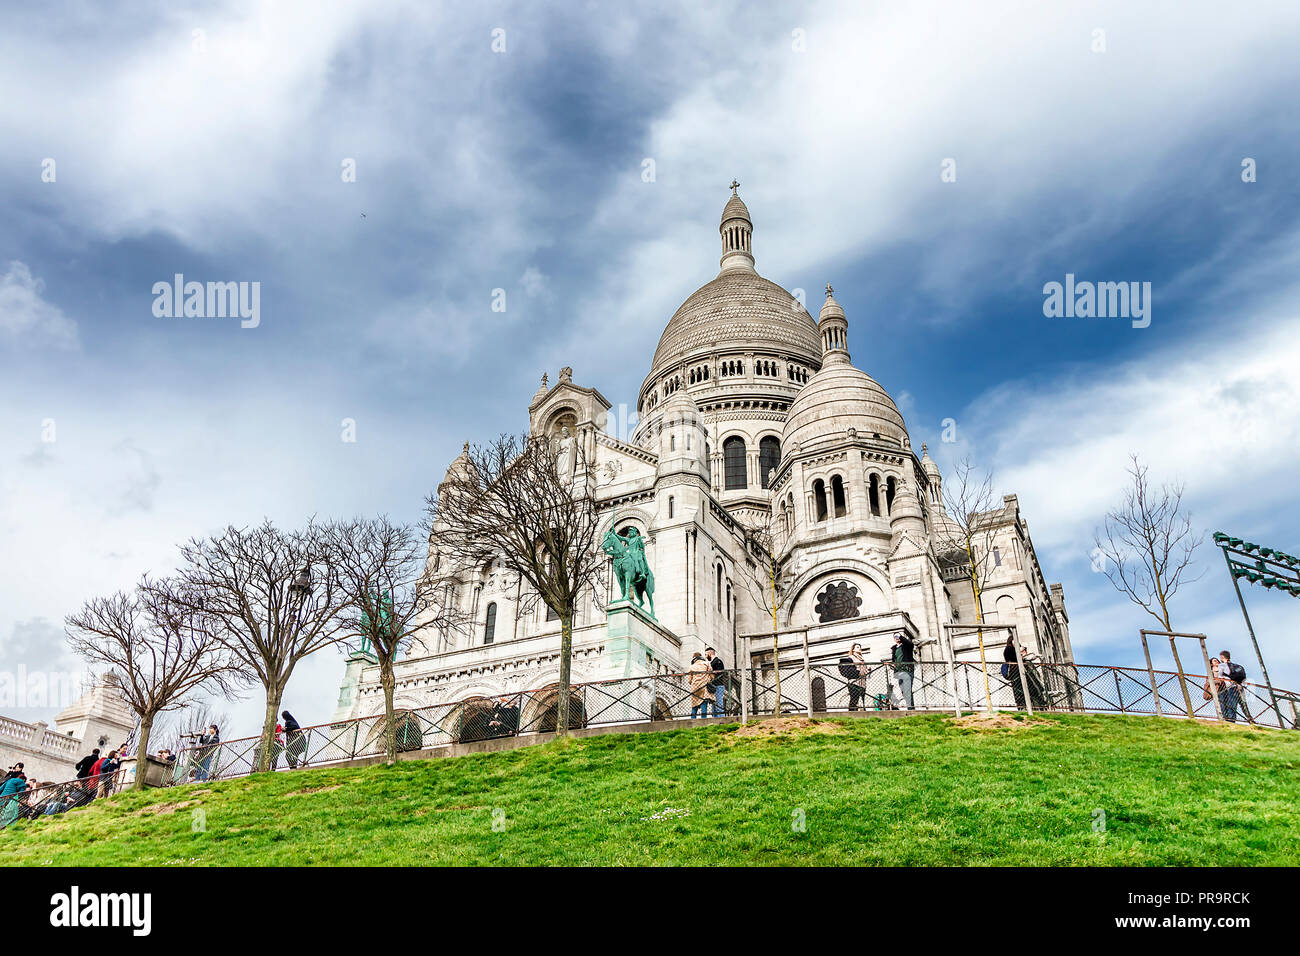 Paris, France - March 14, 2018: The Basilica of the Sacred Heart of Paris is a Roman Catholic church and minor basilica, dedicated to the Sacred Heart - Stock Image